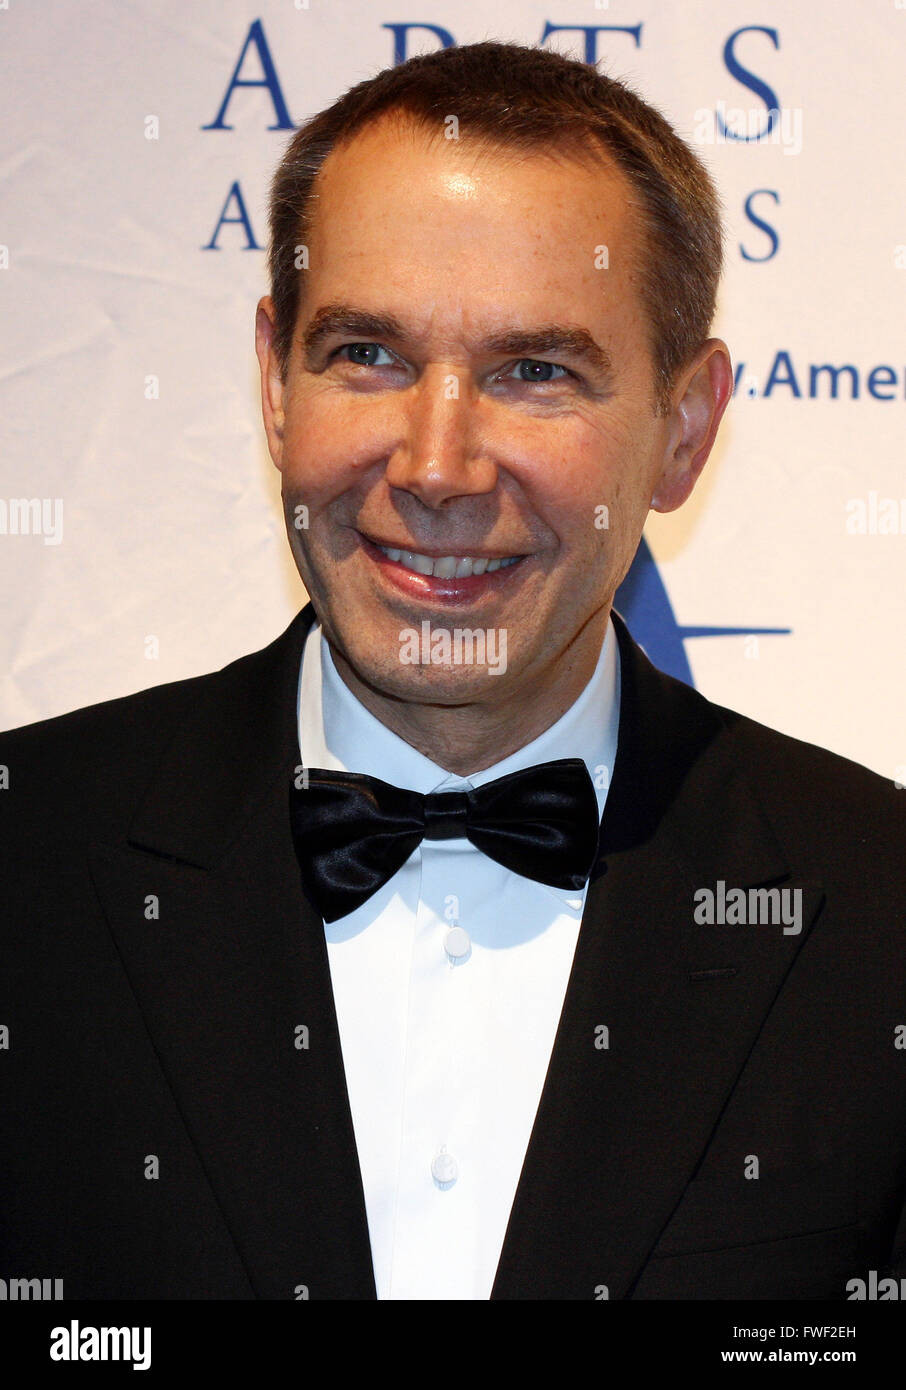 Jeff Koons at The 2008 Americans For The Arts Annual National Arts Awards. Cipriani 42nd Street, New York City, - Stock Image